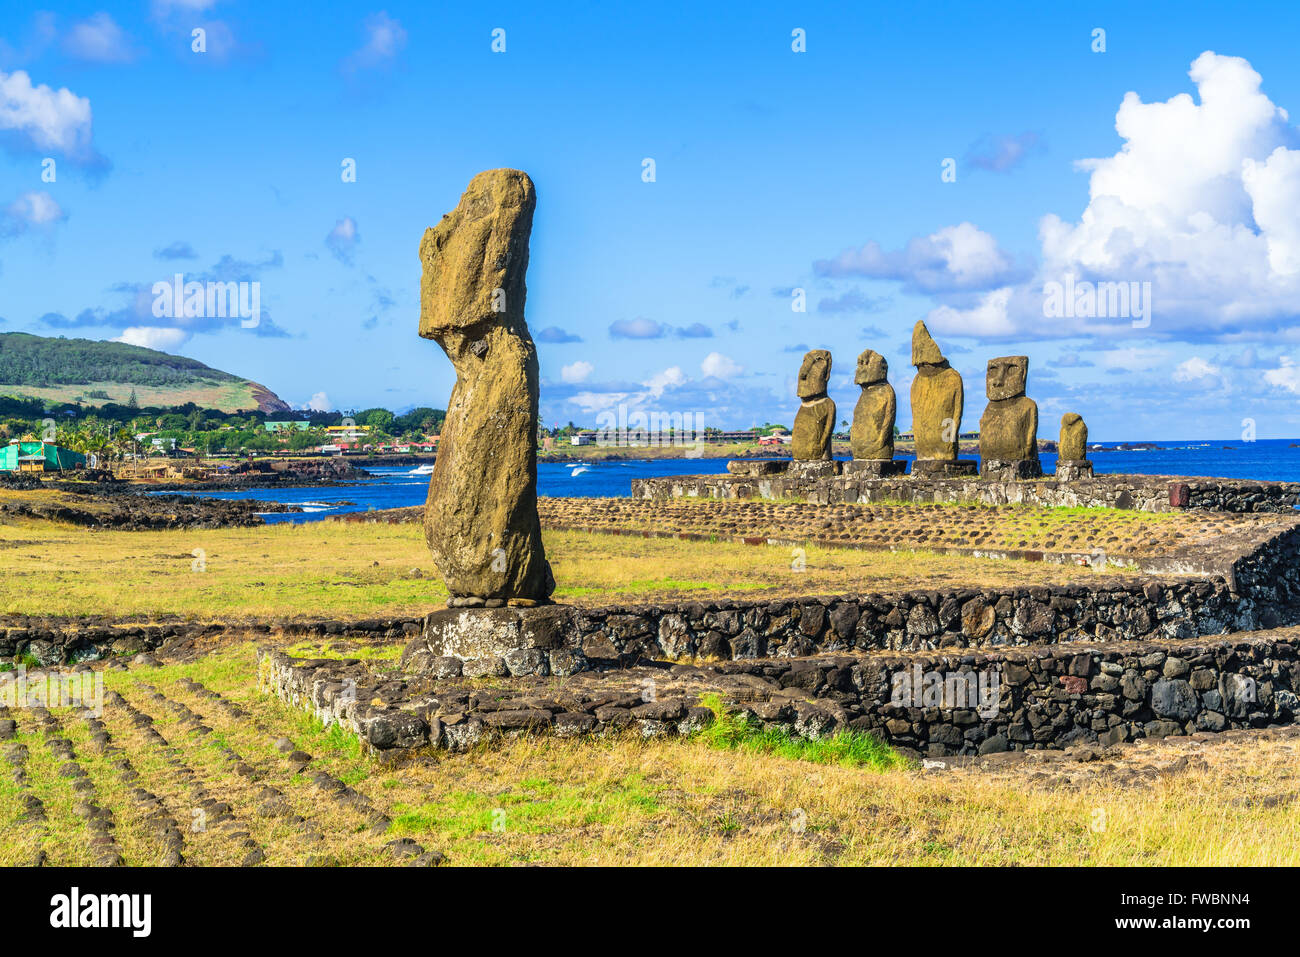 Ahu Tahai and Ahu Vai Uri in Tahat Archeological Complex, Easter Island, Chile - Stock Image